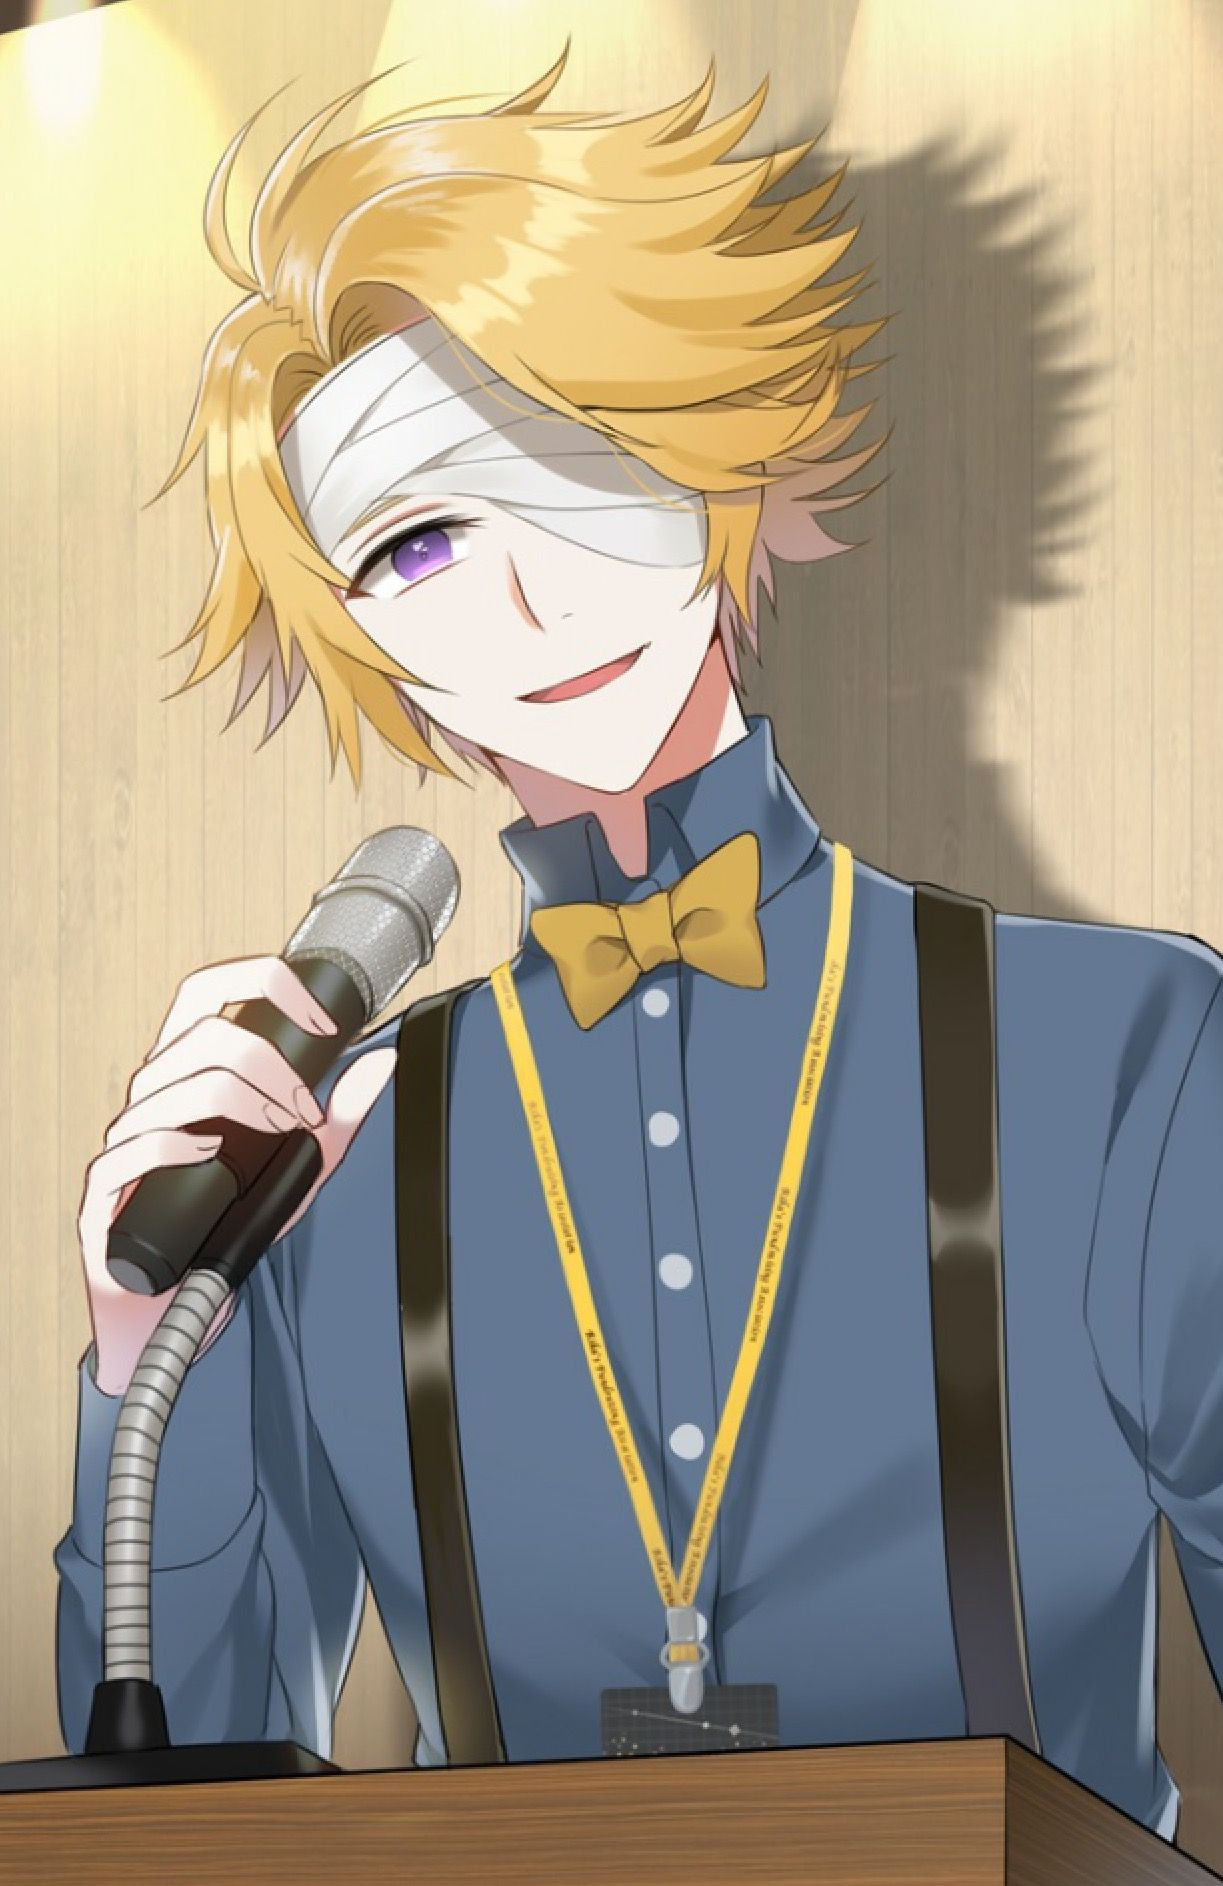 Omg just finished the yoosung route next up jaehee